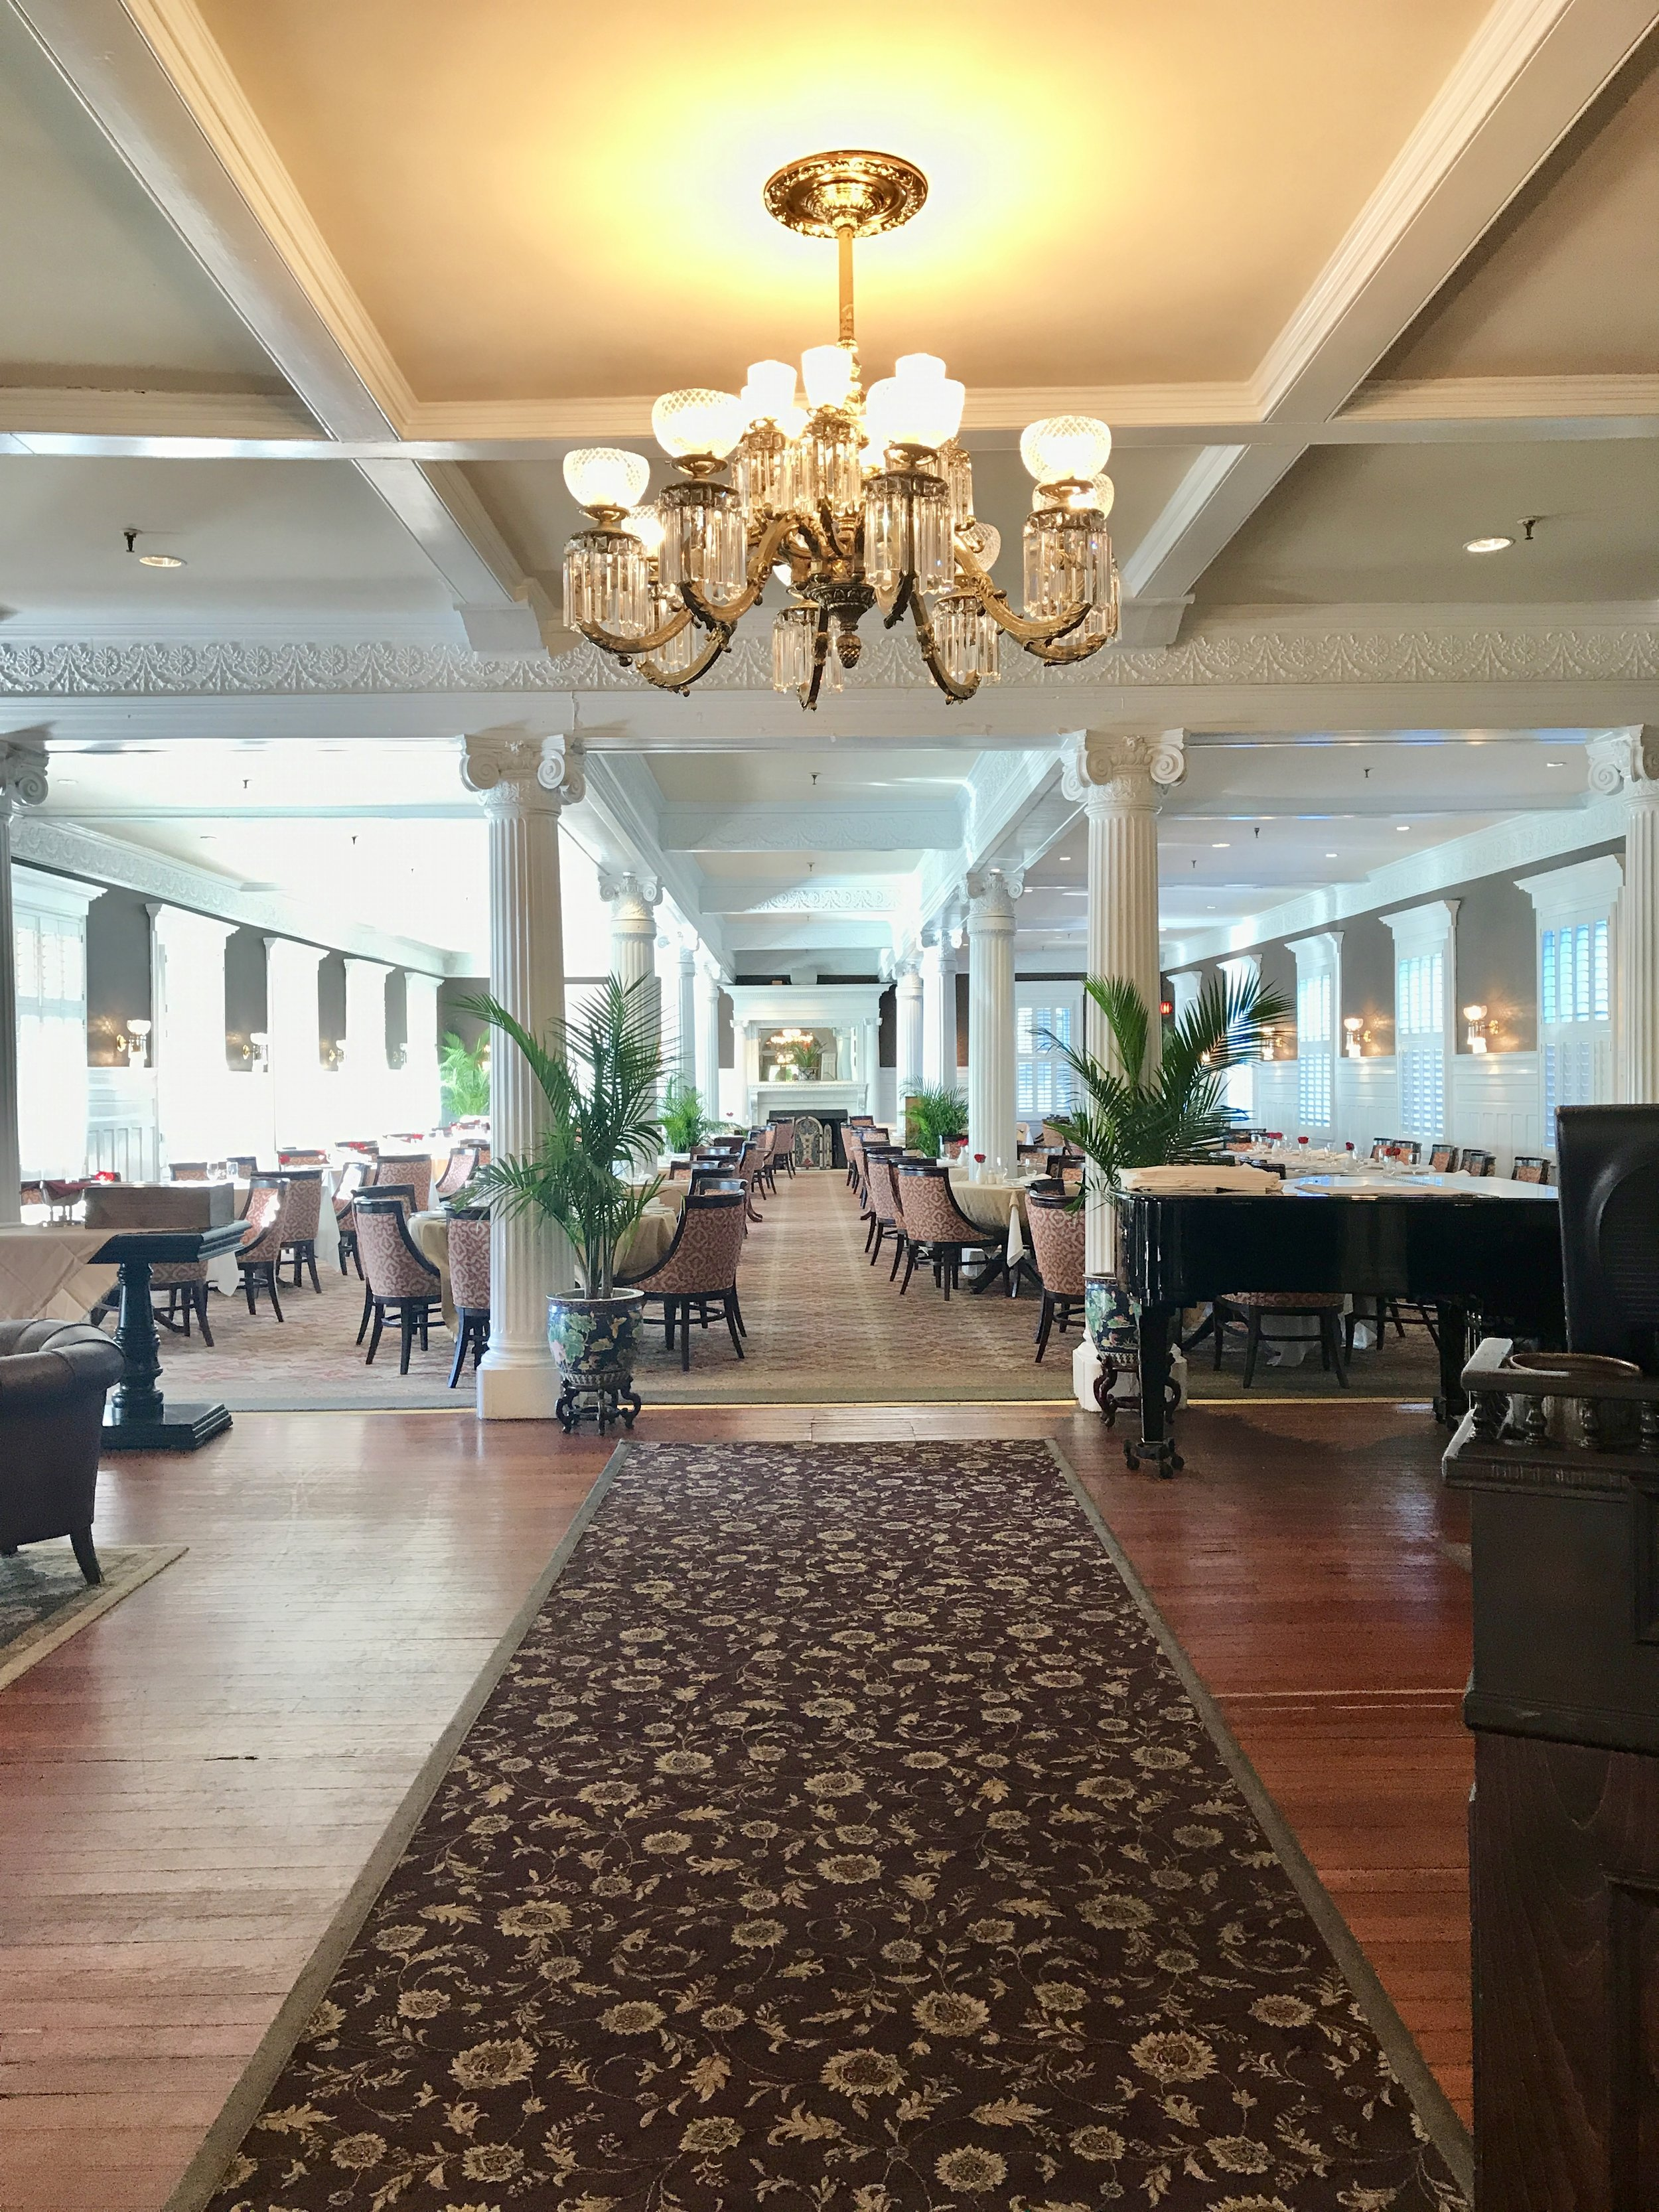 Grand Dining Room at the Jekyll Island Club.